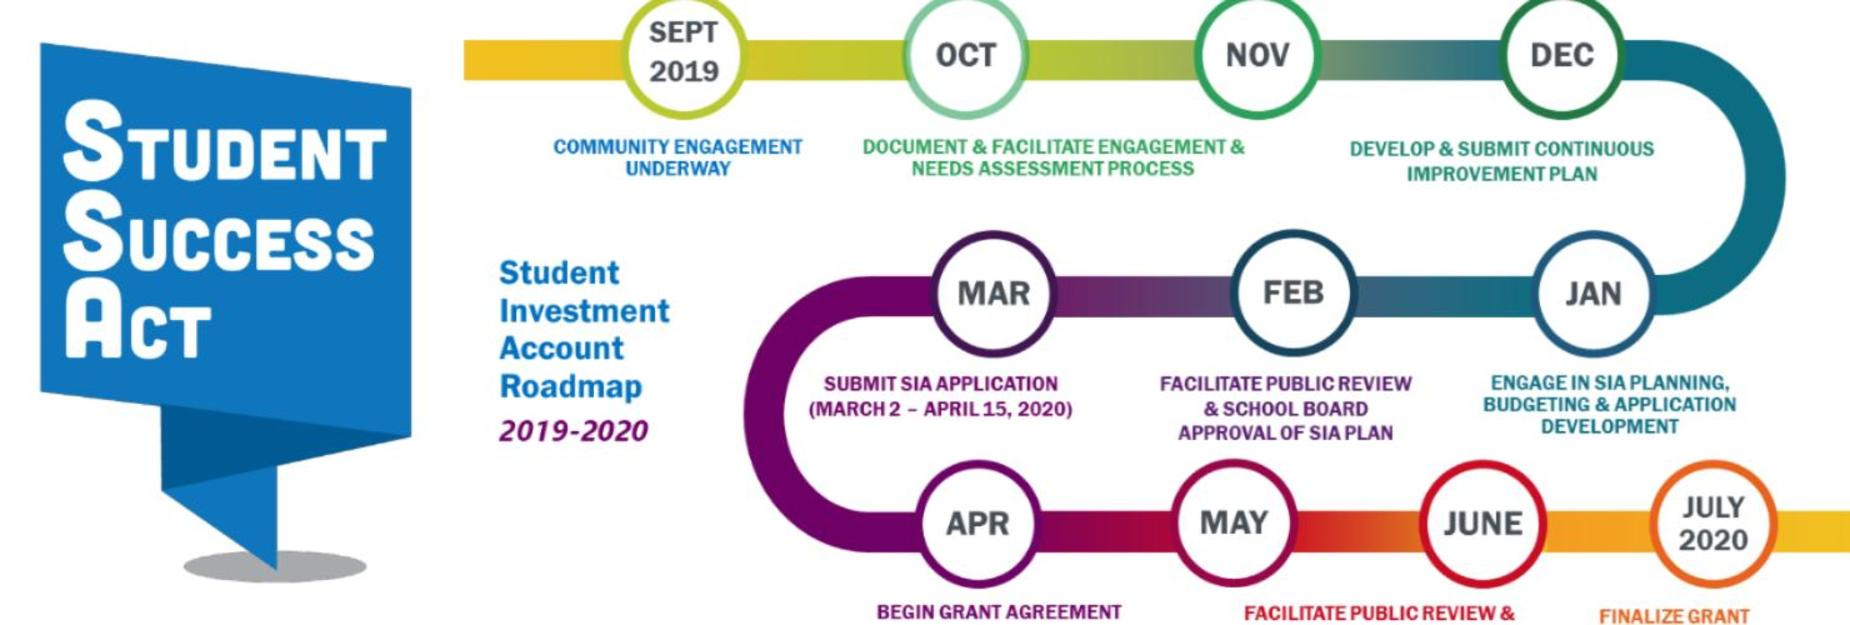 Student Success Act Timeline